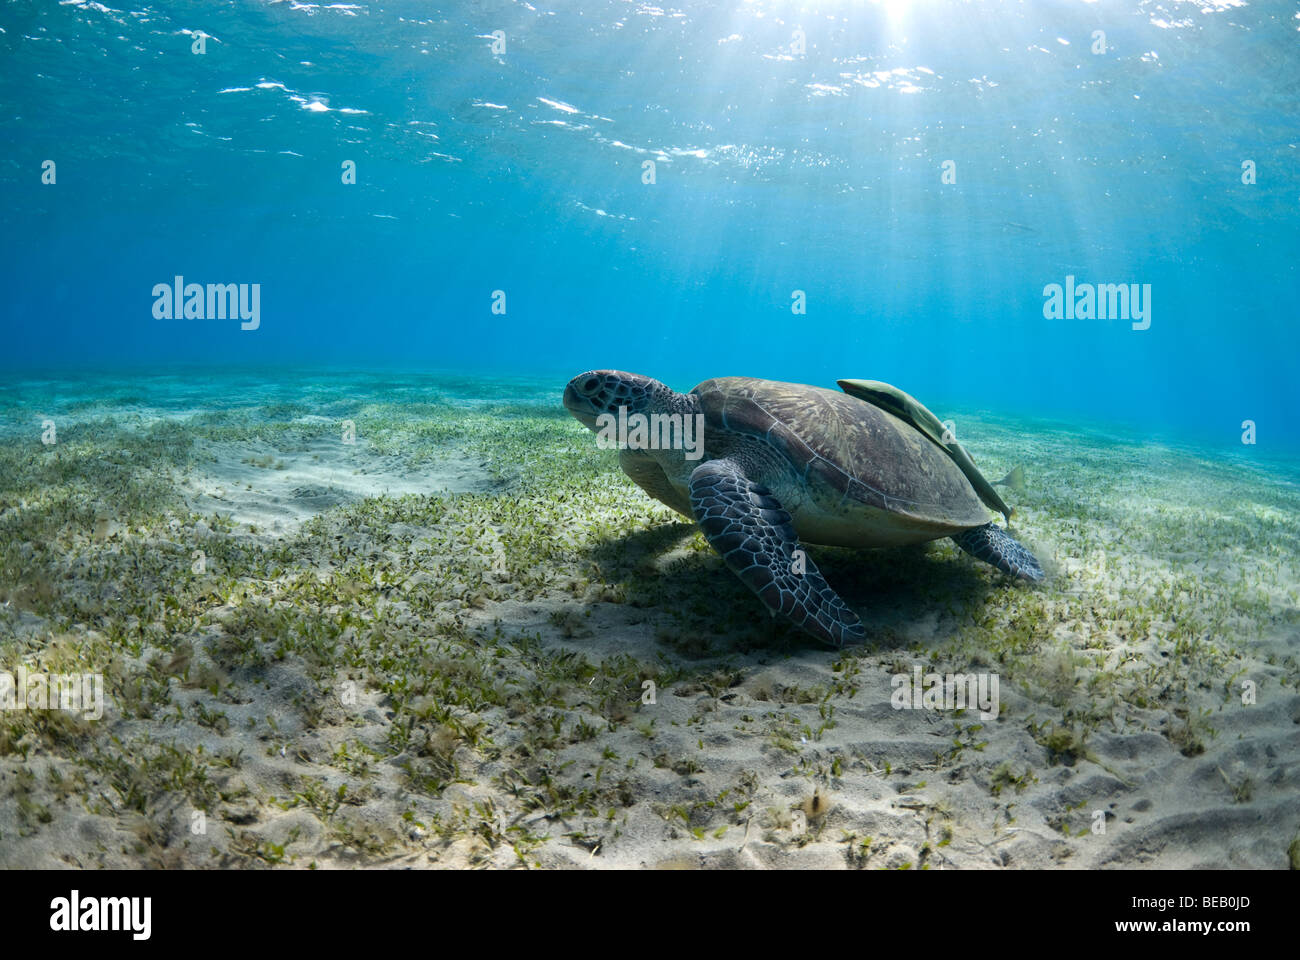 Green sea turtle feeding on the sea grass in shallow bay. Chelonia mydas - Stock Image